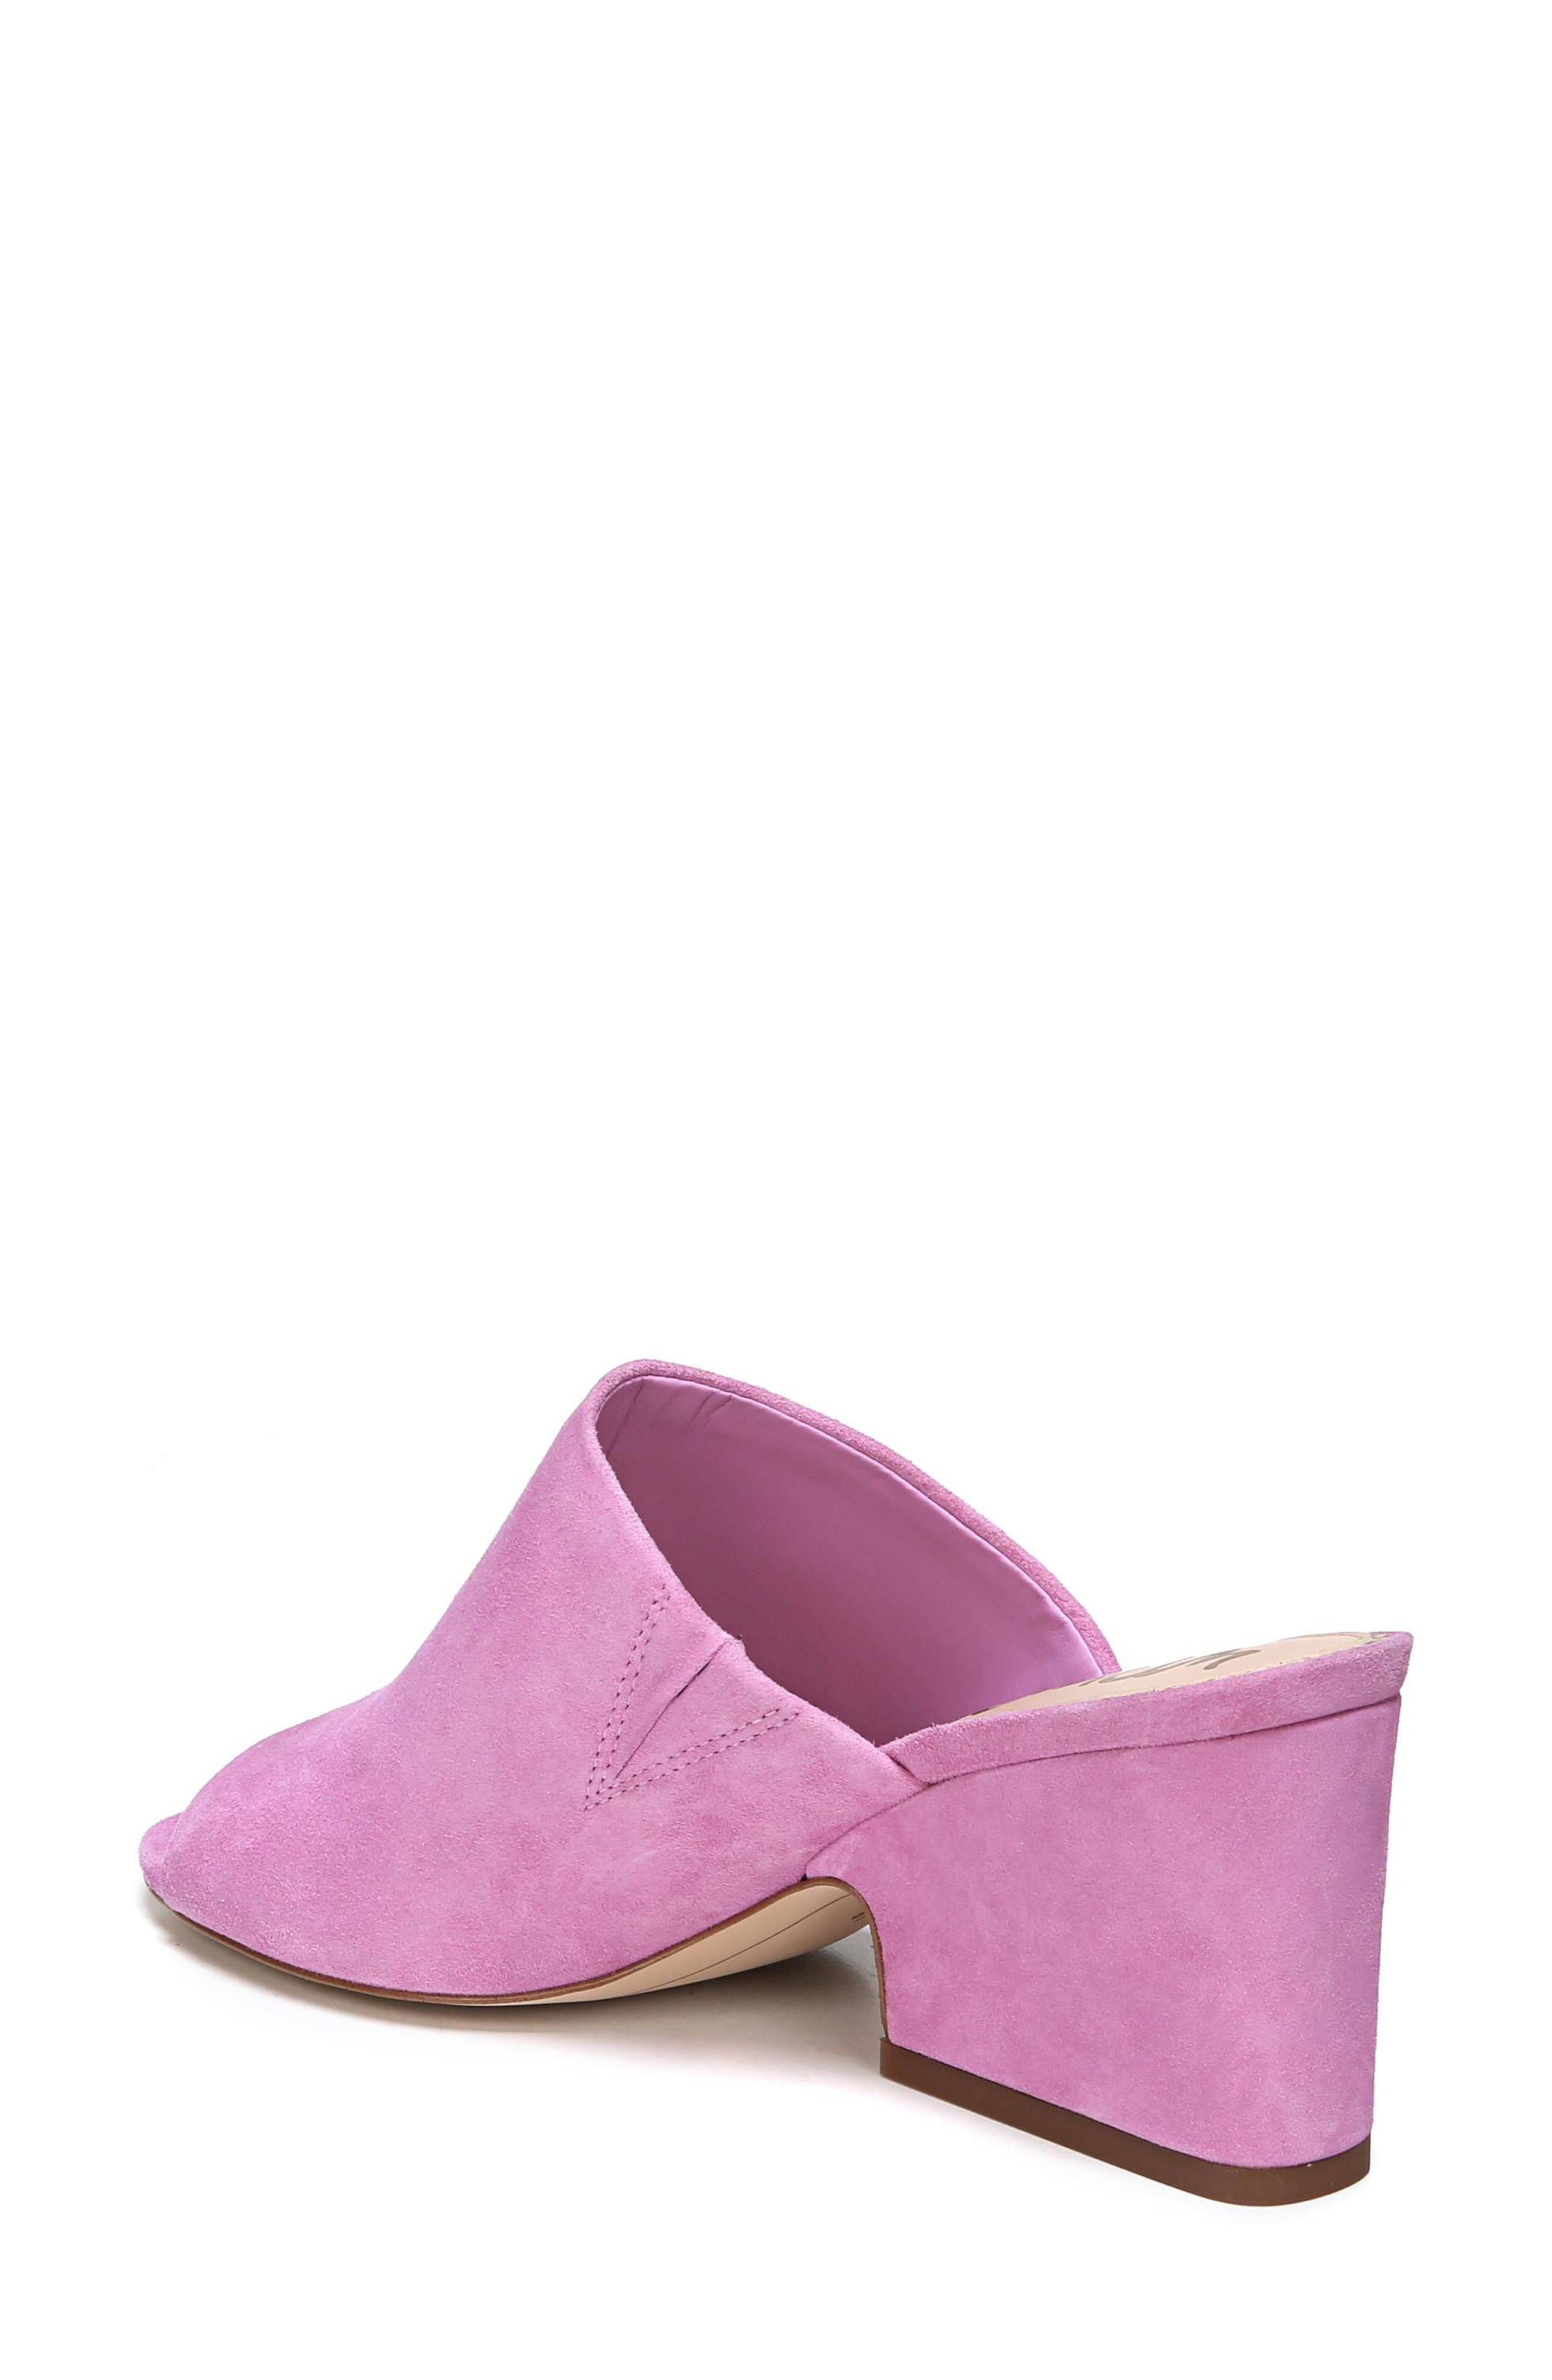 Rheta Mule,                             Alternate thumbnail 2, color,                             Fiji Pink Suede